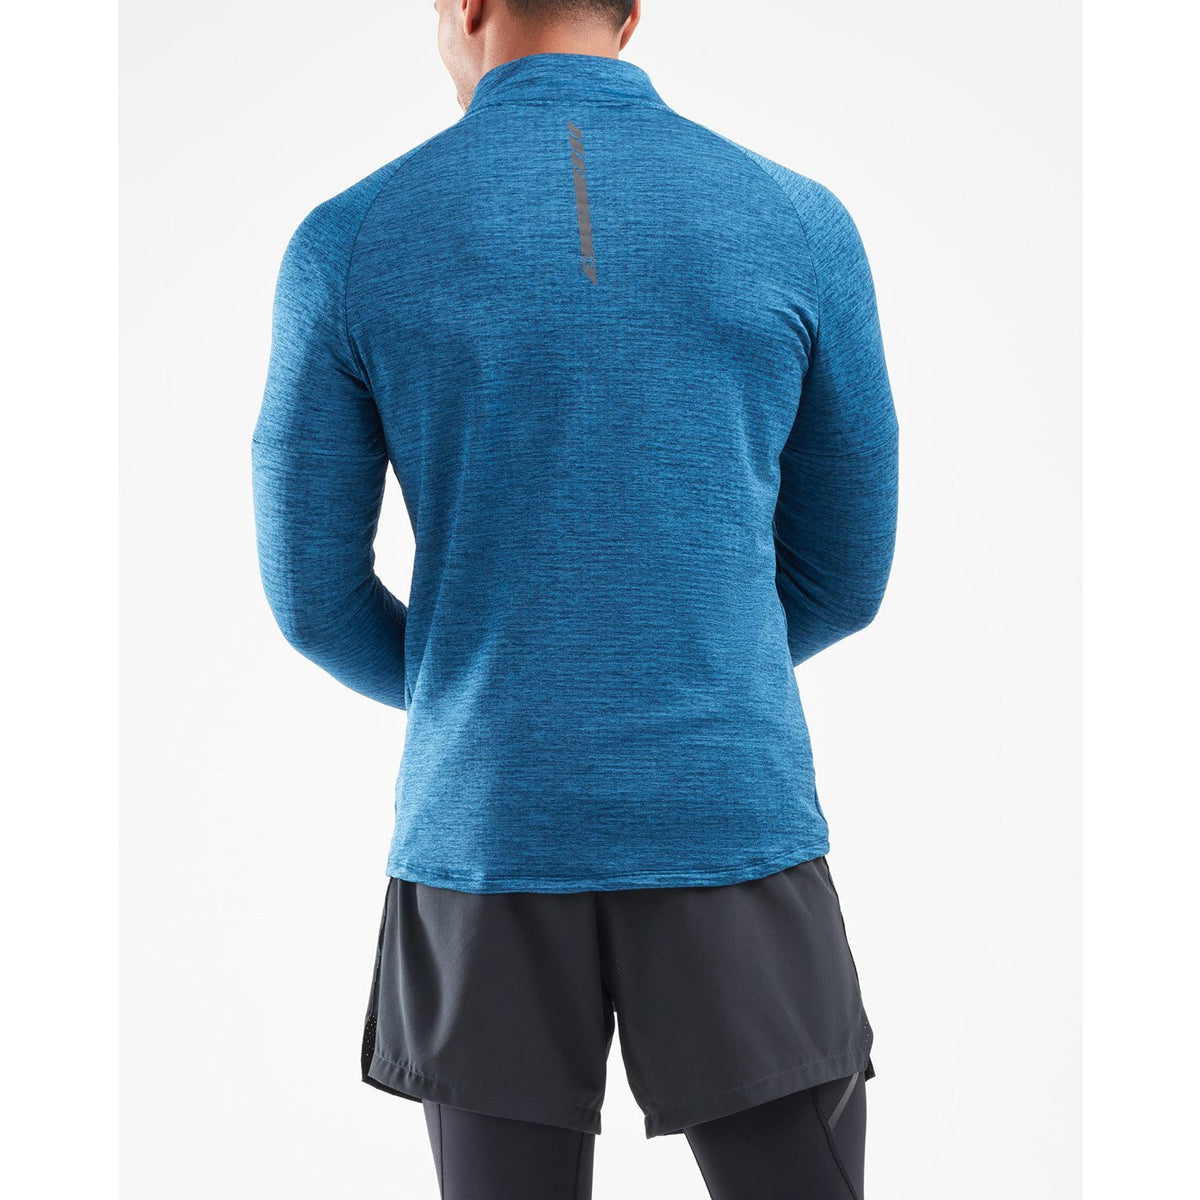 2XU Mens PURSUIT Thermal 1/4 Zip Top - Sole Motive